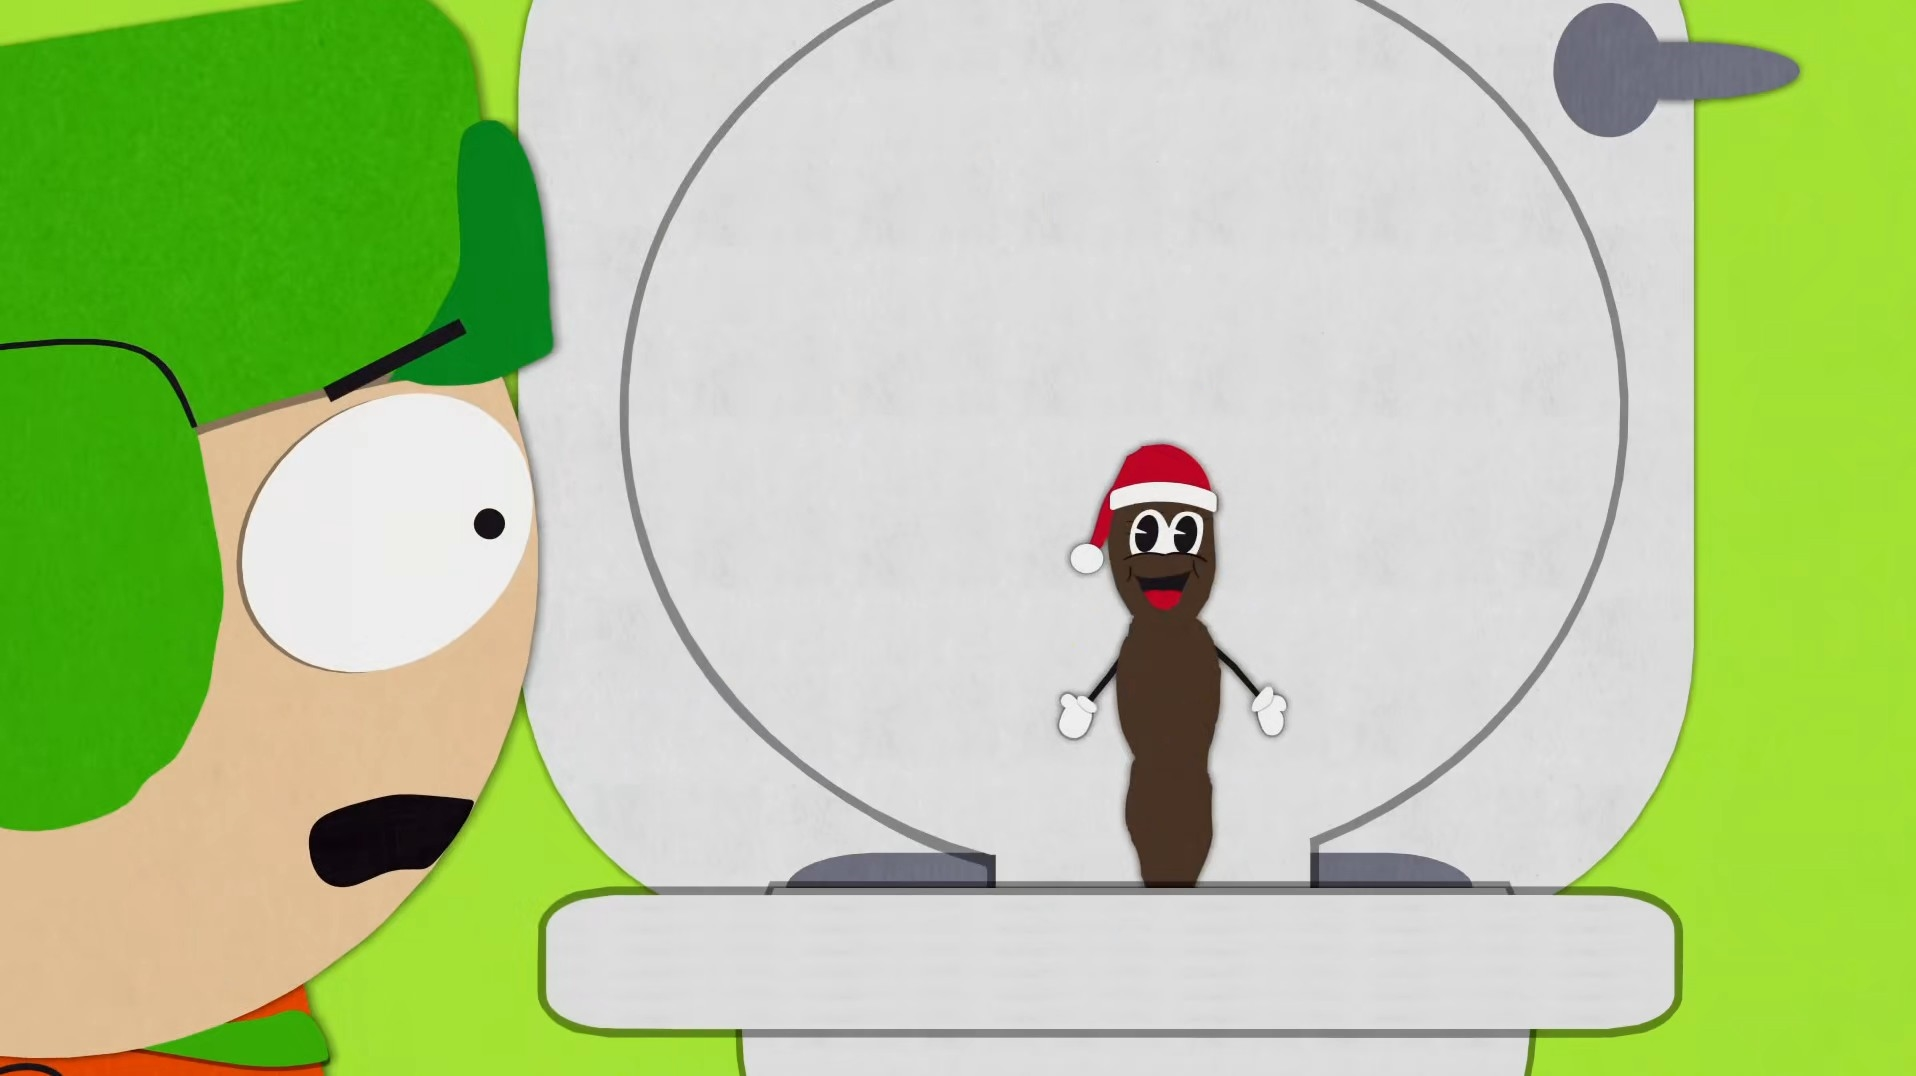 mr hankey the christmas poo - Christmas Poop